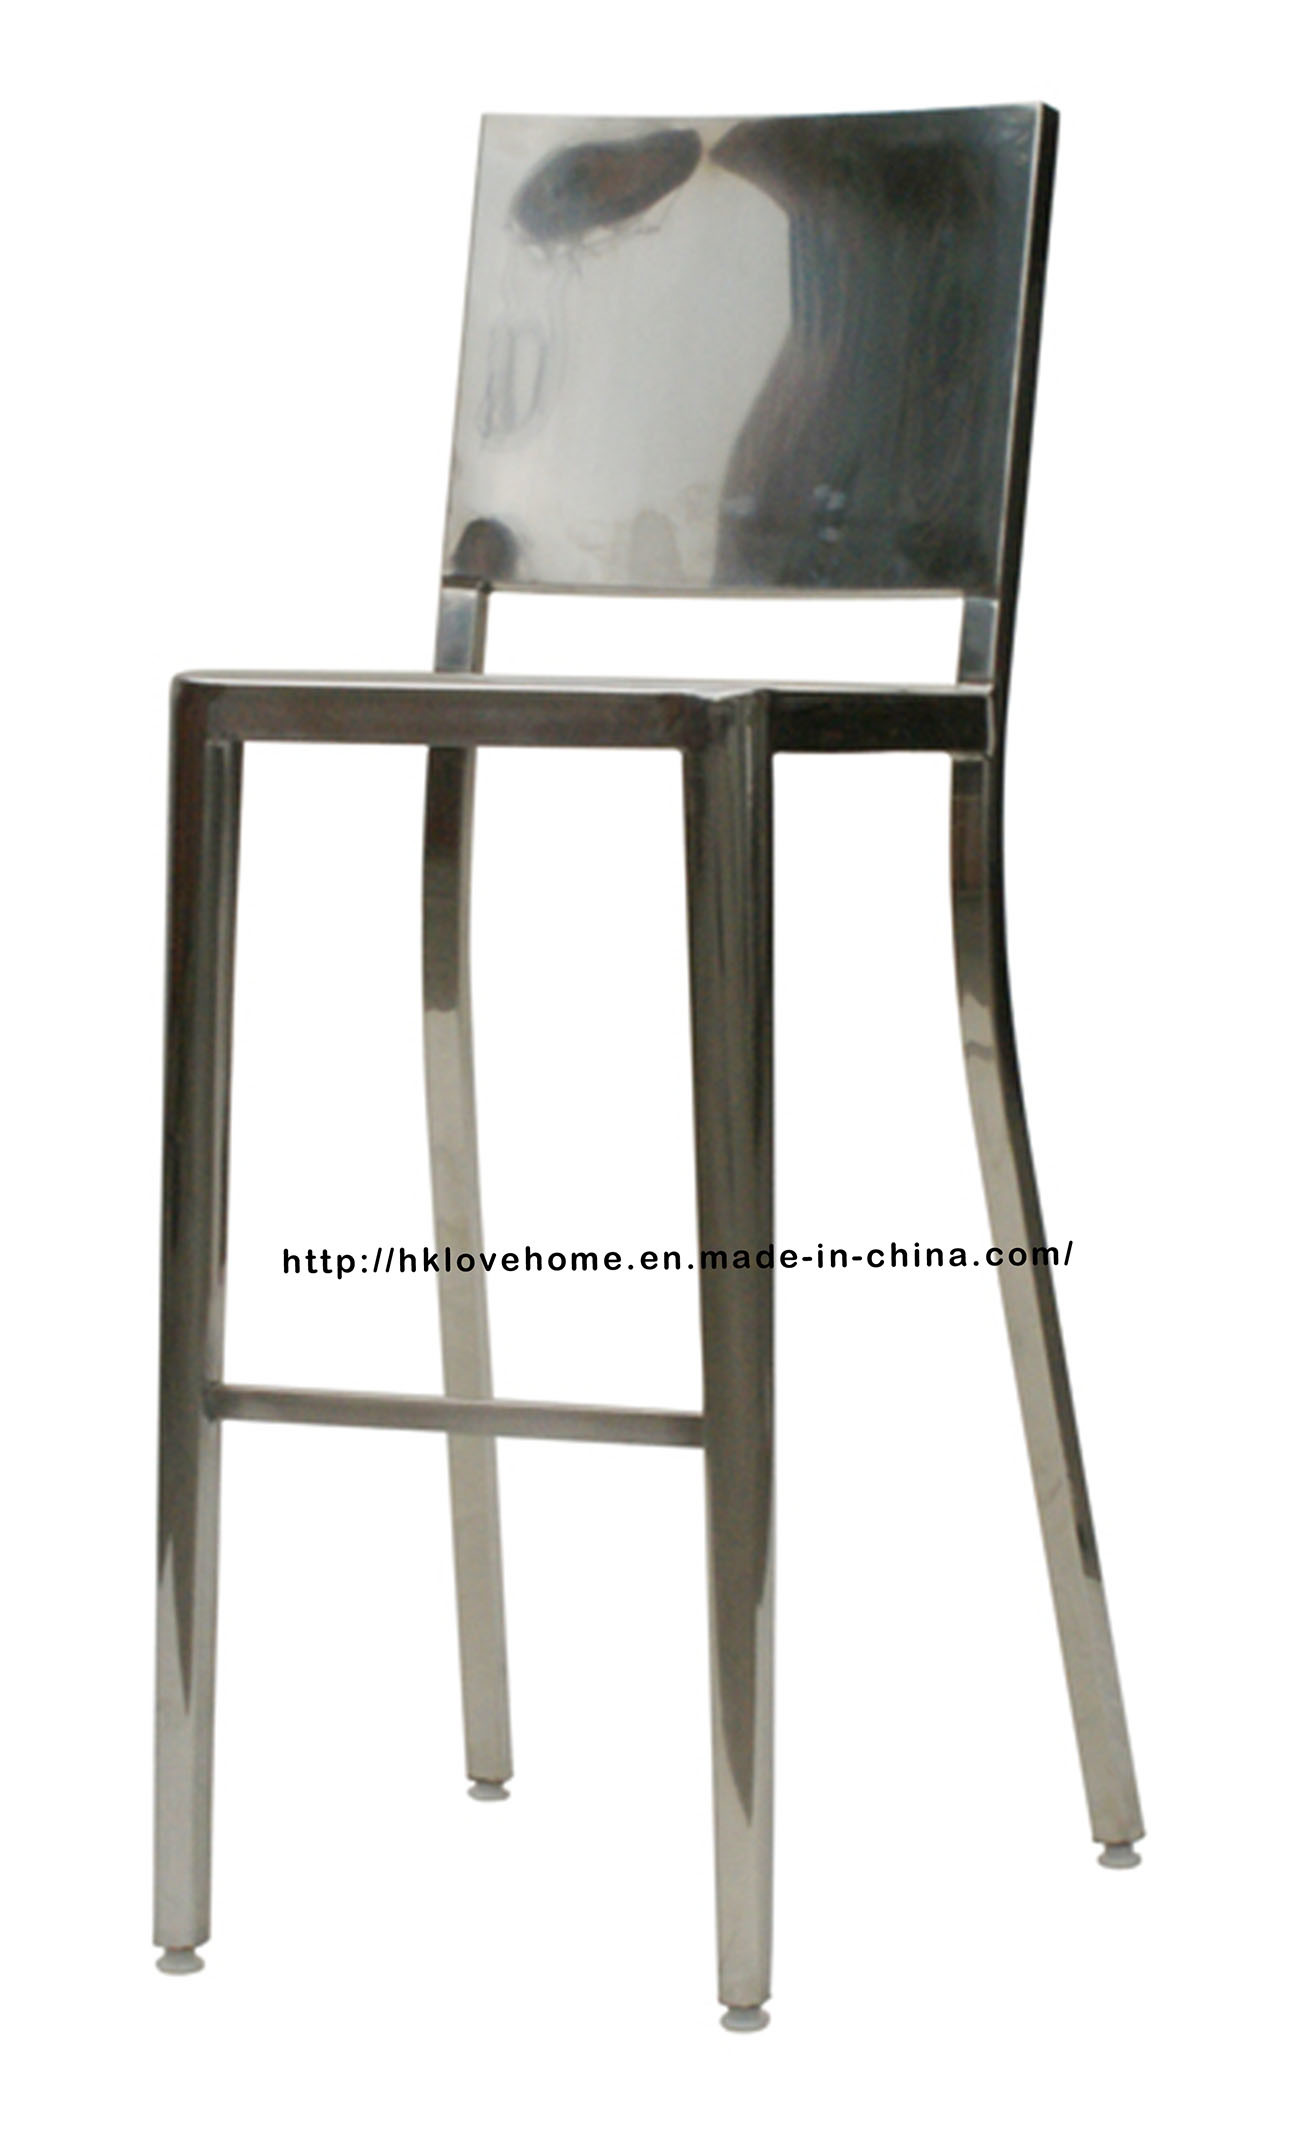 stainless steel stools kitchen tuscan sunflower decor lovely high bar stool chairs rtty1